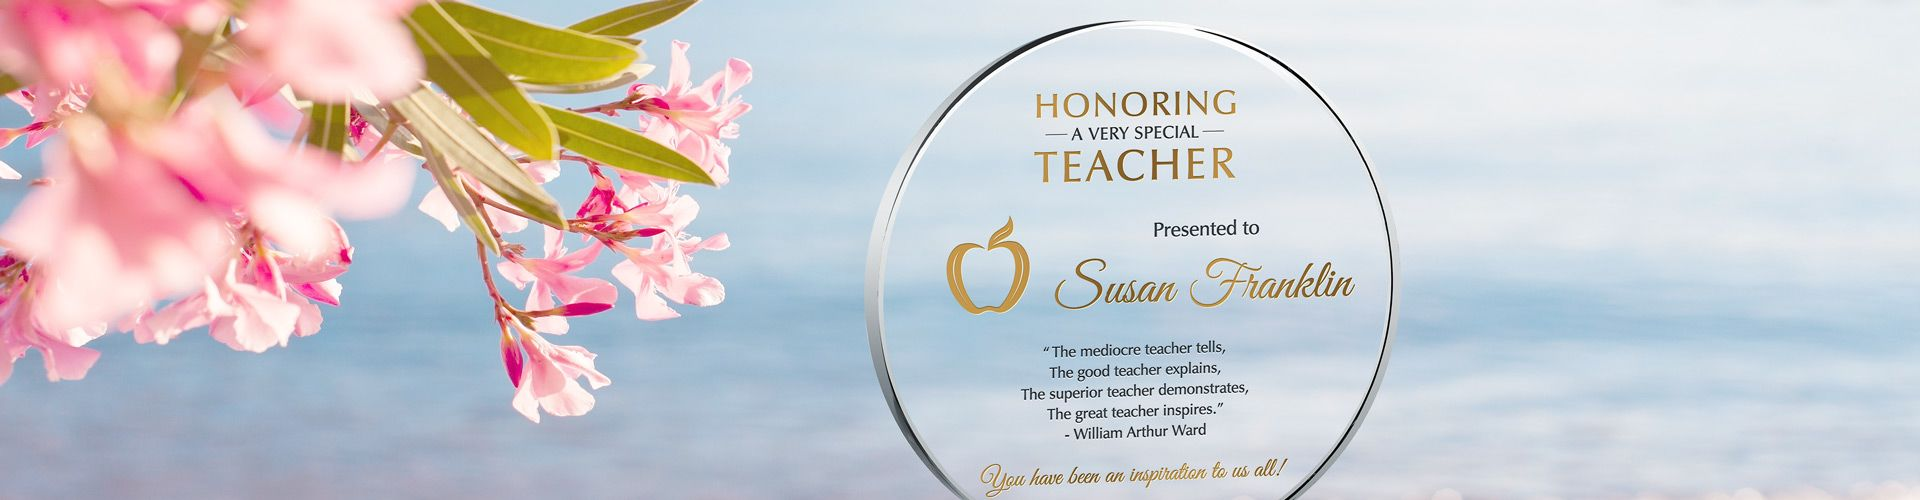 Teacher Appreciation Wording Ideas and Sample Layouts – Certificate of Appreciation Wordings